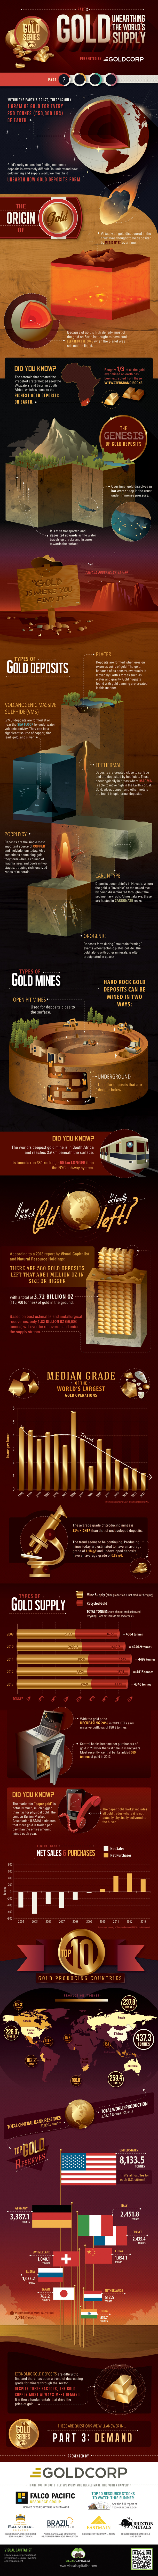 Gold Series Part 2 infographic